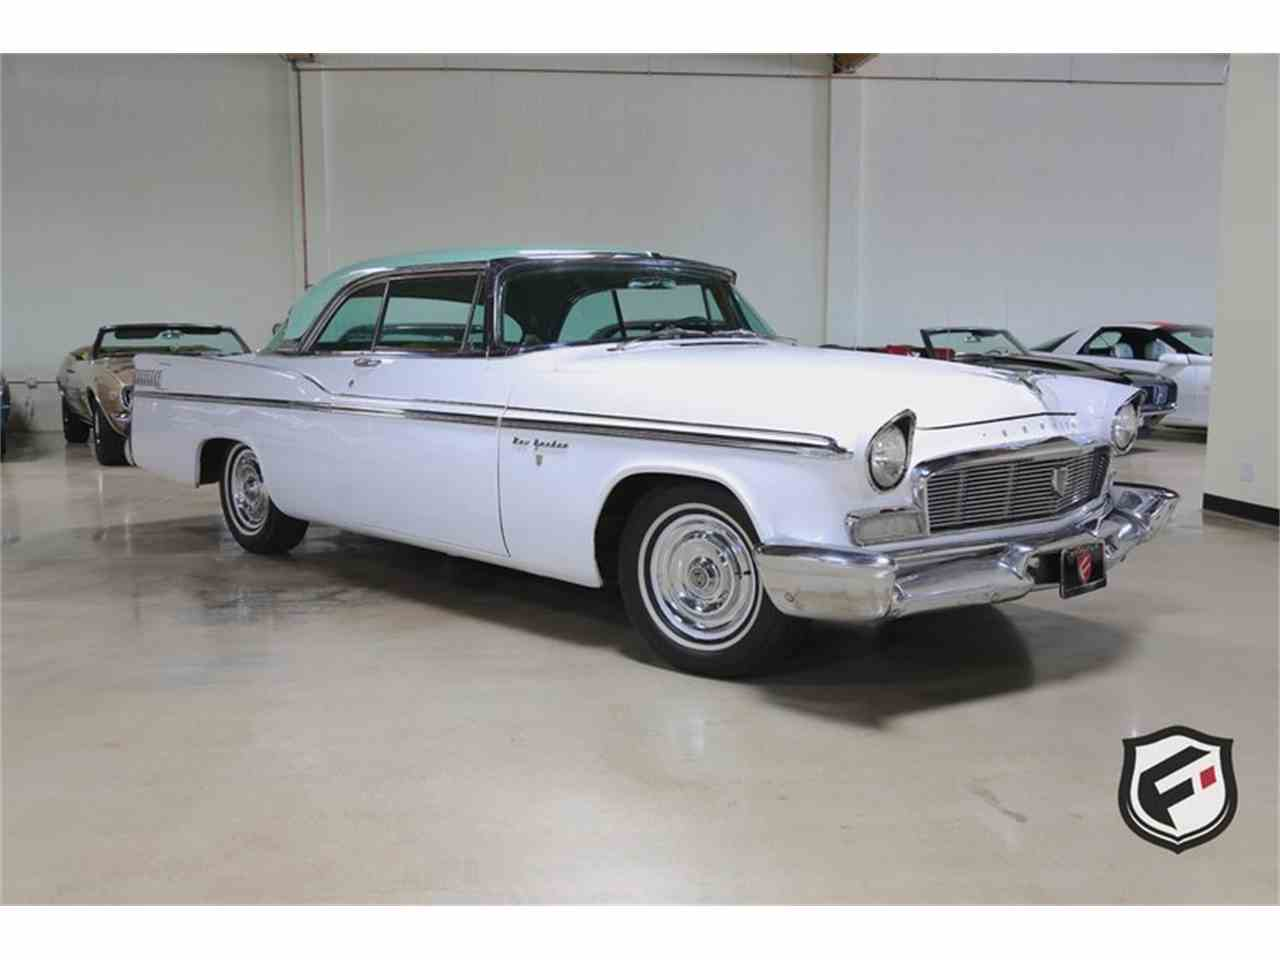 Find Every Shop In The World Selling Used 1954 Chrysler New Yorker 1942 Convertible Cc1026213 Cc1018015 Cc956493 Cc764763 Cc578242 42394 L6l3842 1956